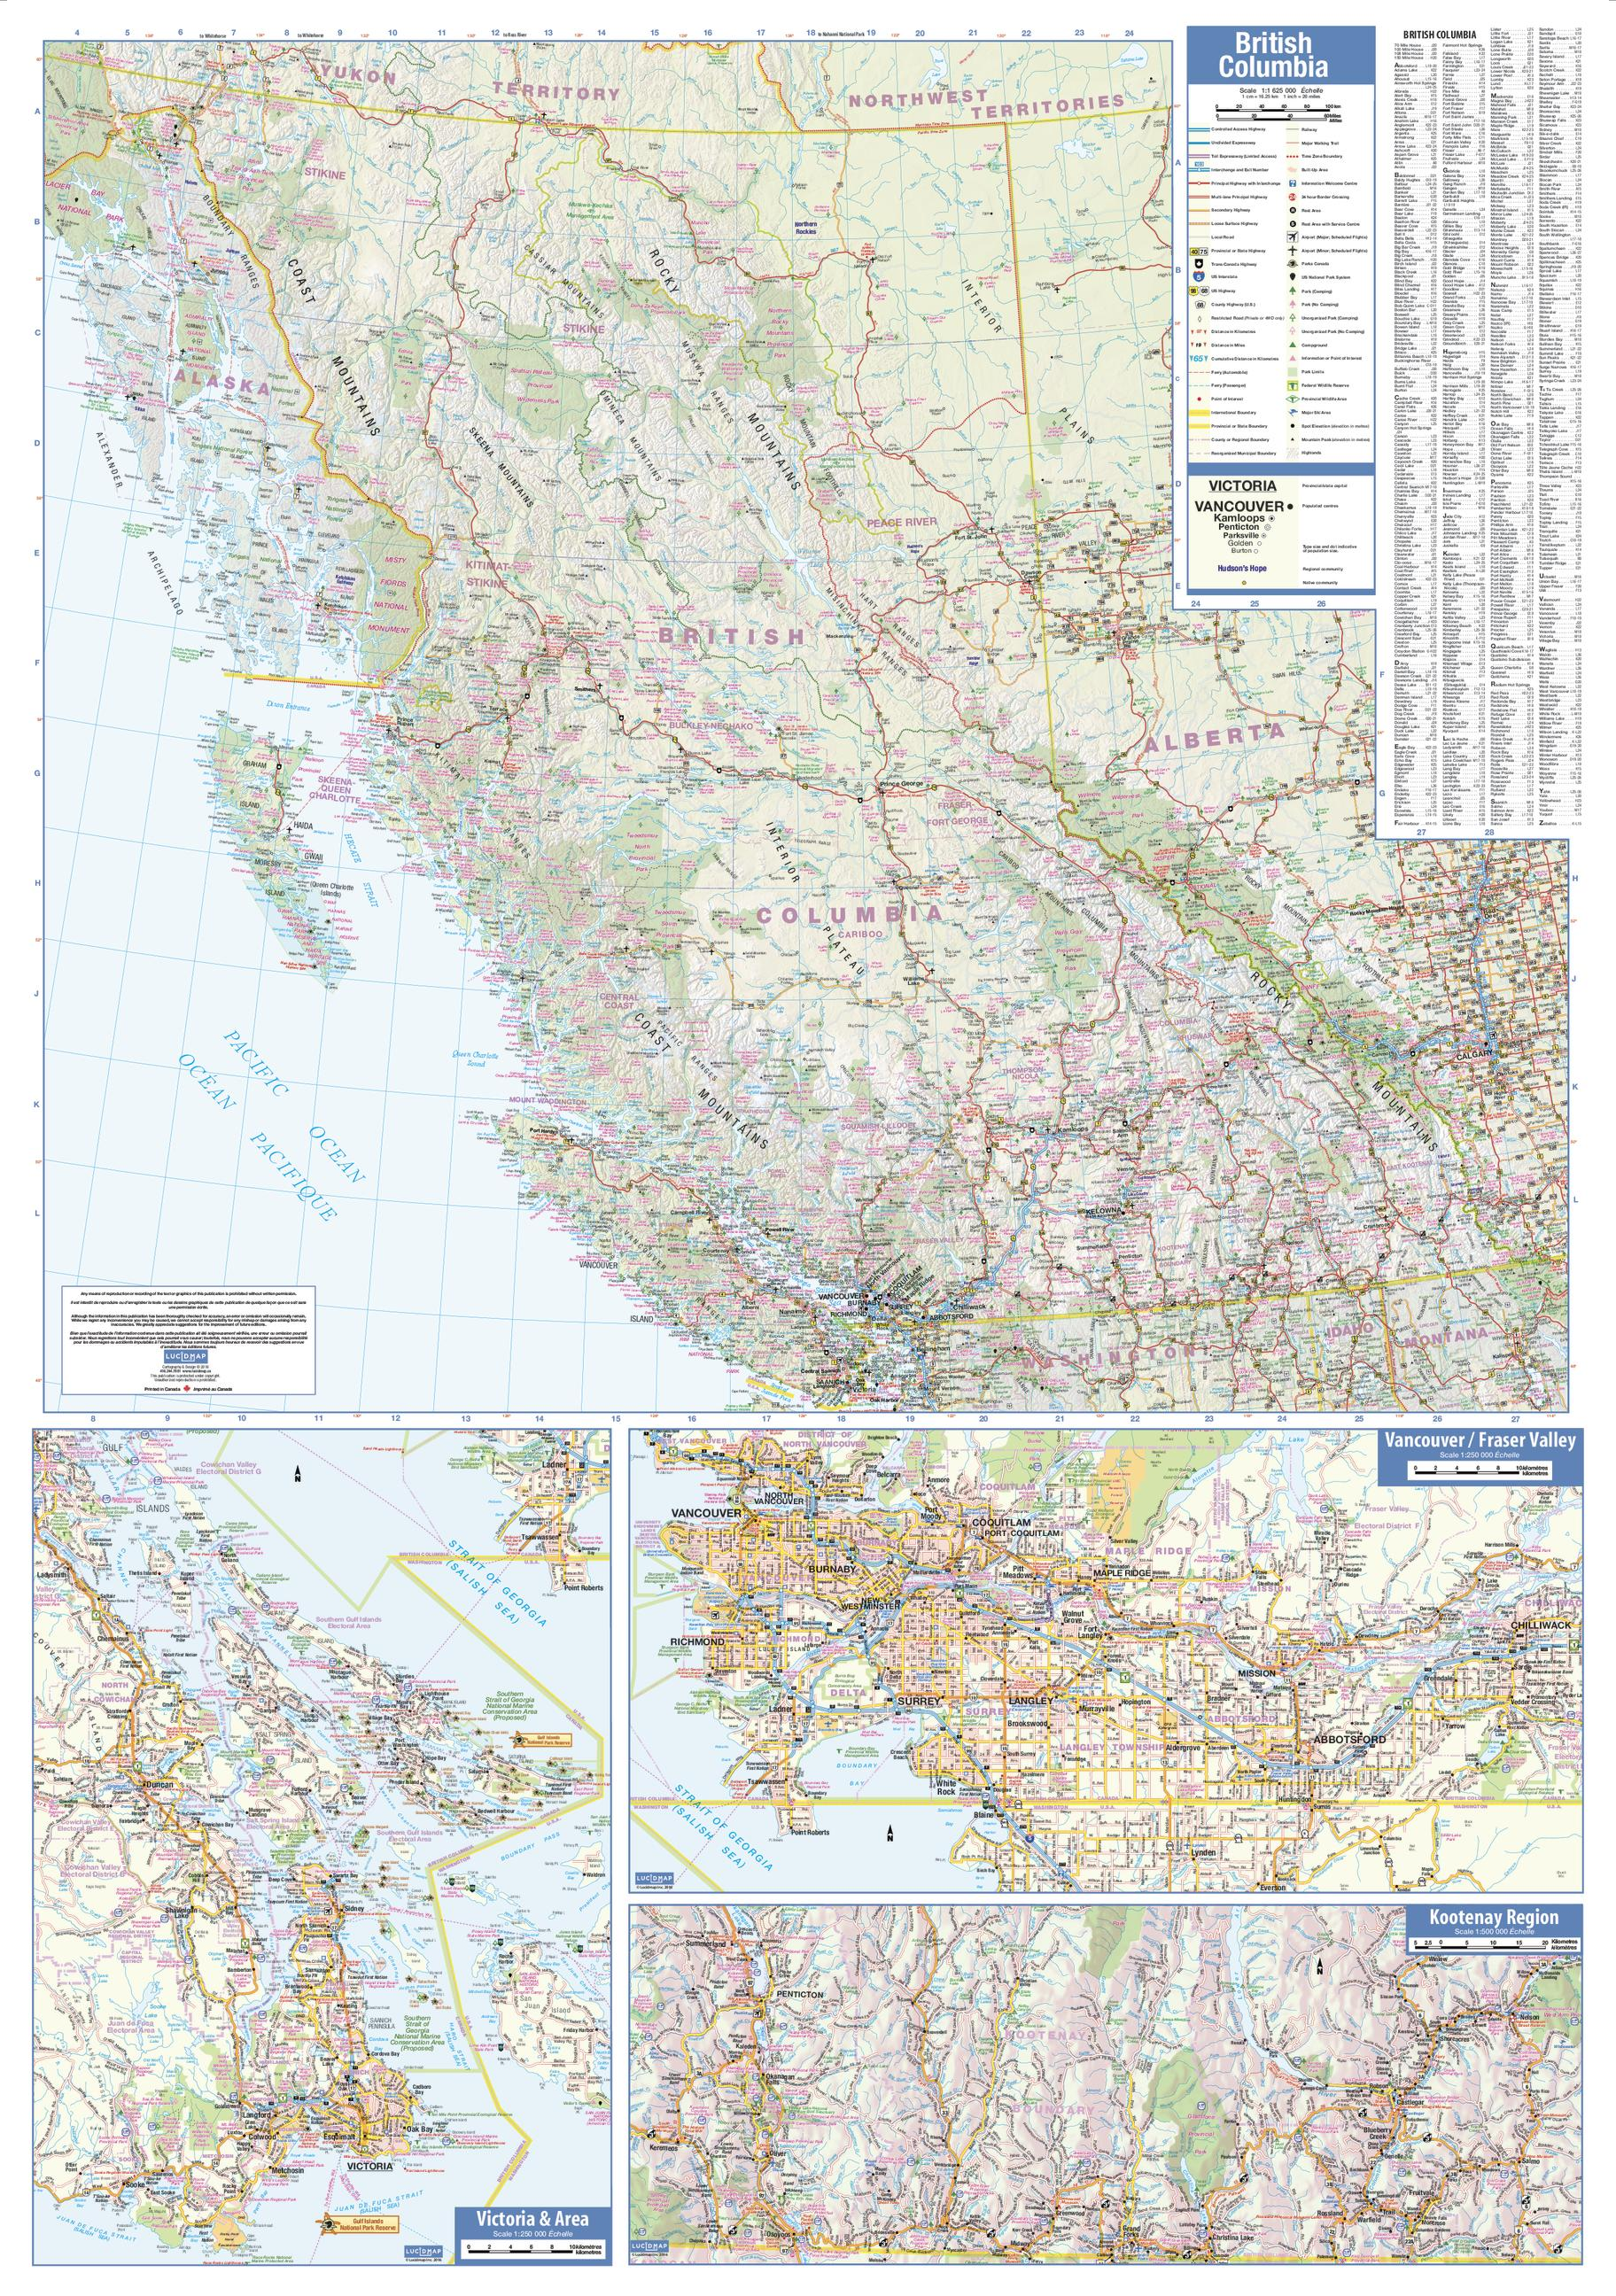 British Columbia LARGE Wall Map Shop Online At WorldOfMapscom - British columbia map